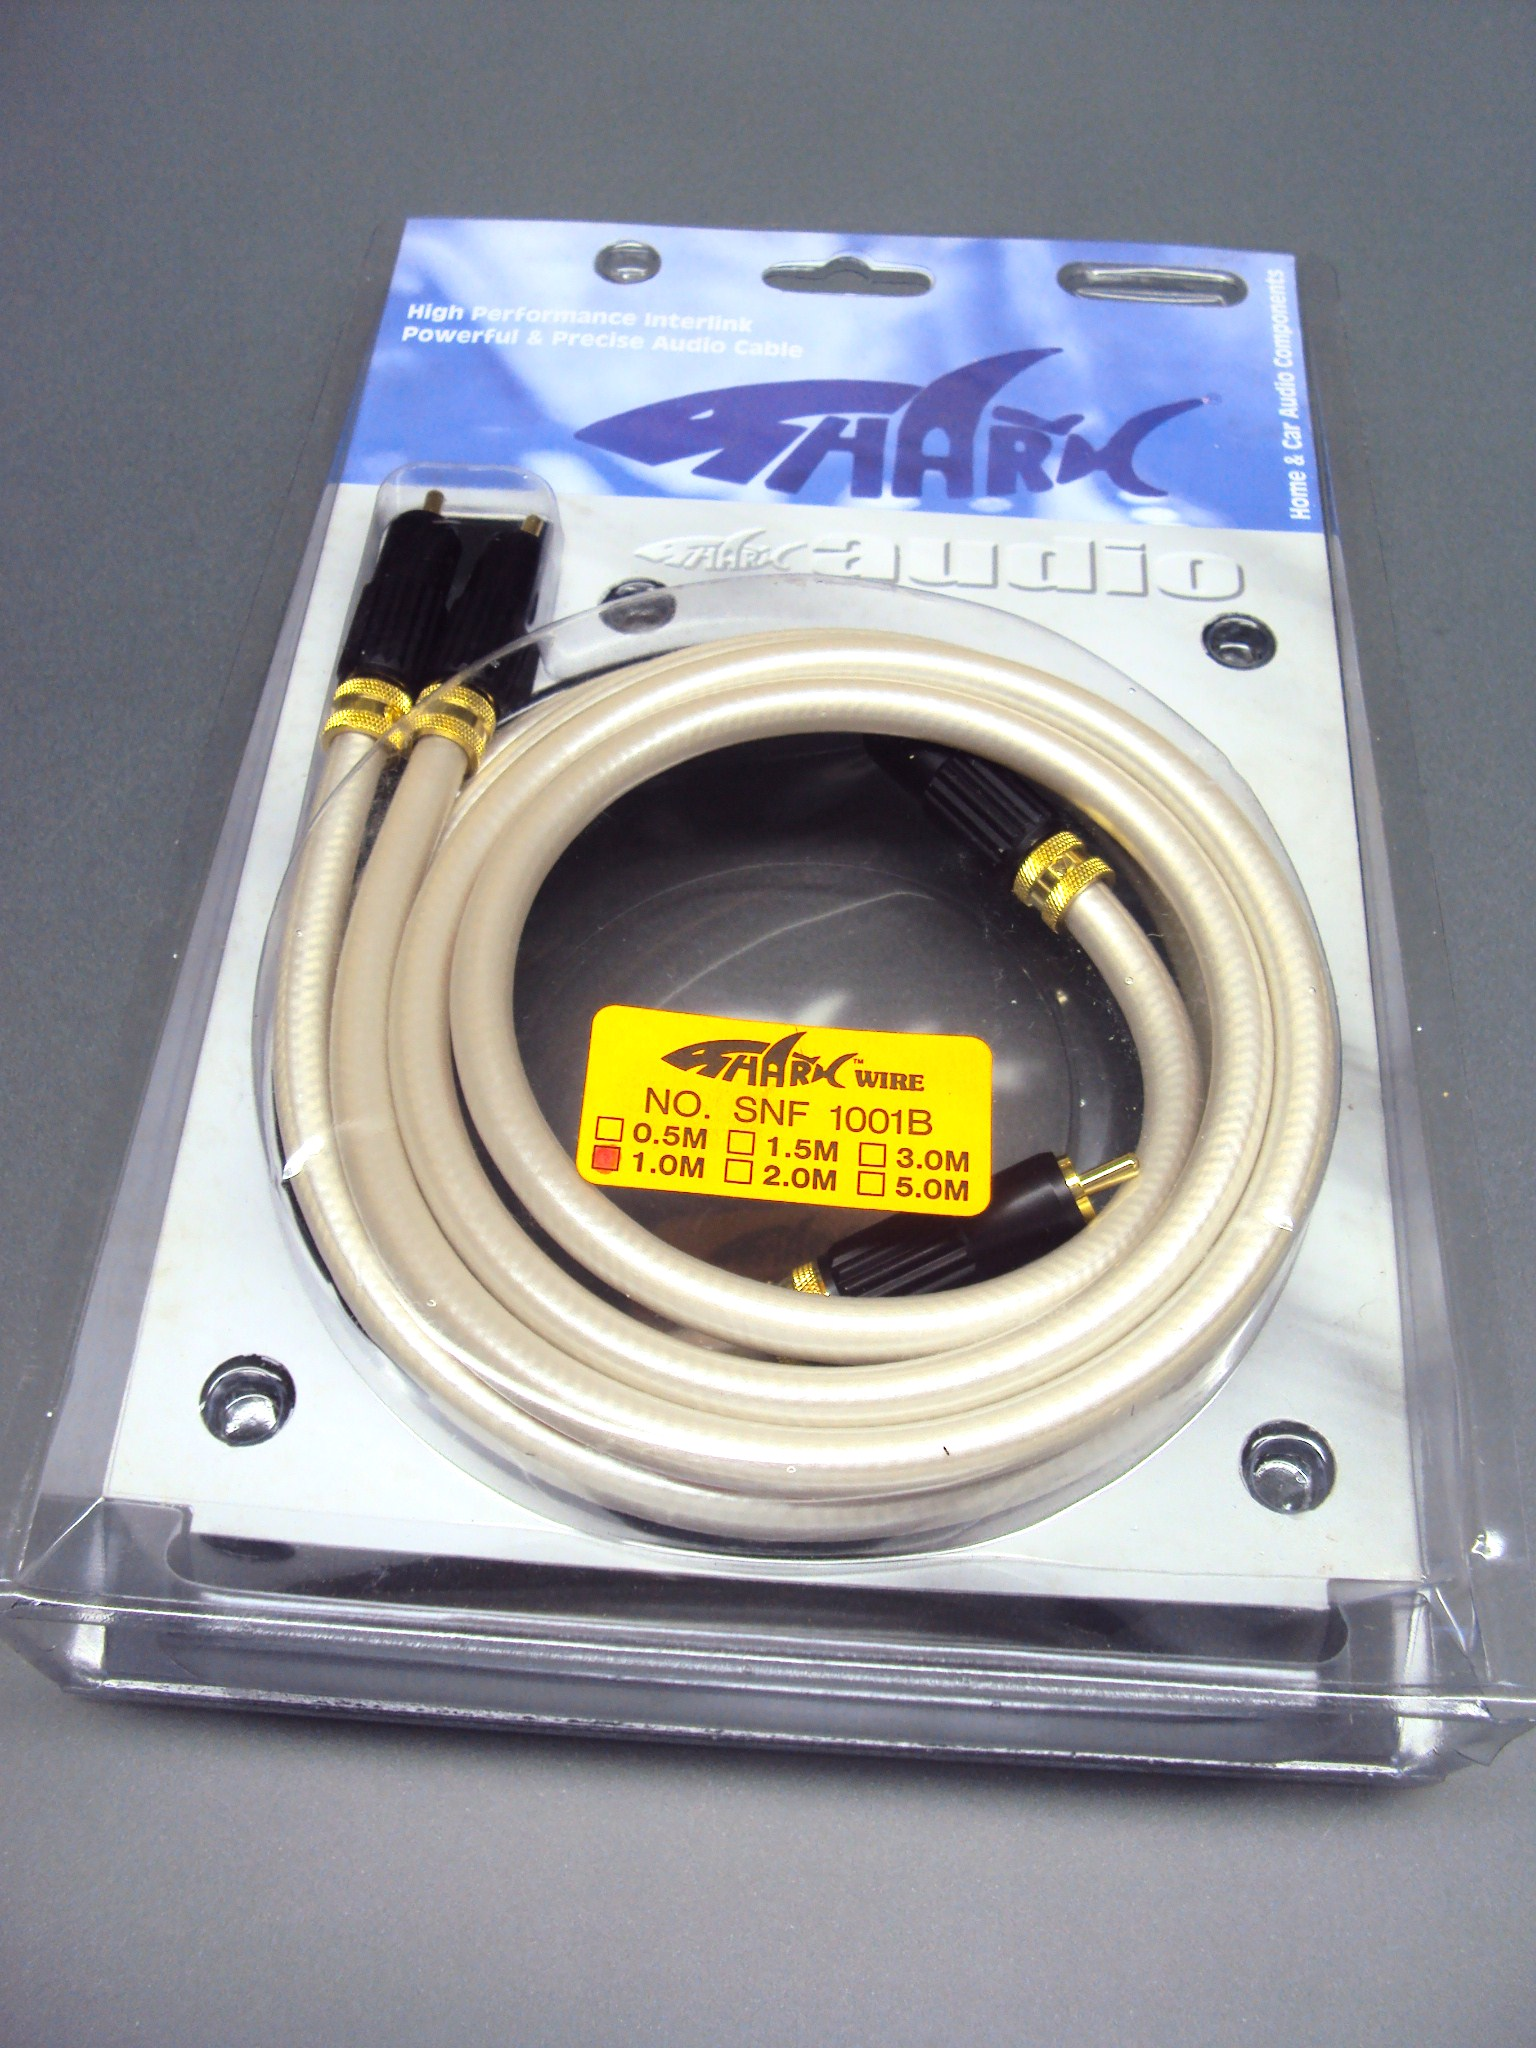 Sharkwire SSC-P1910